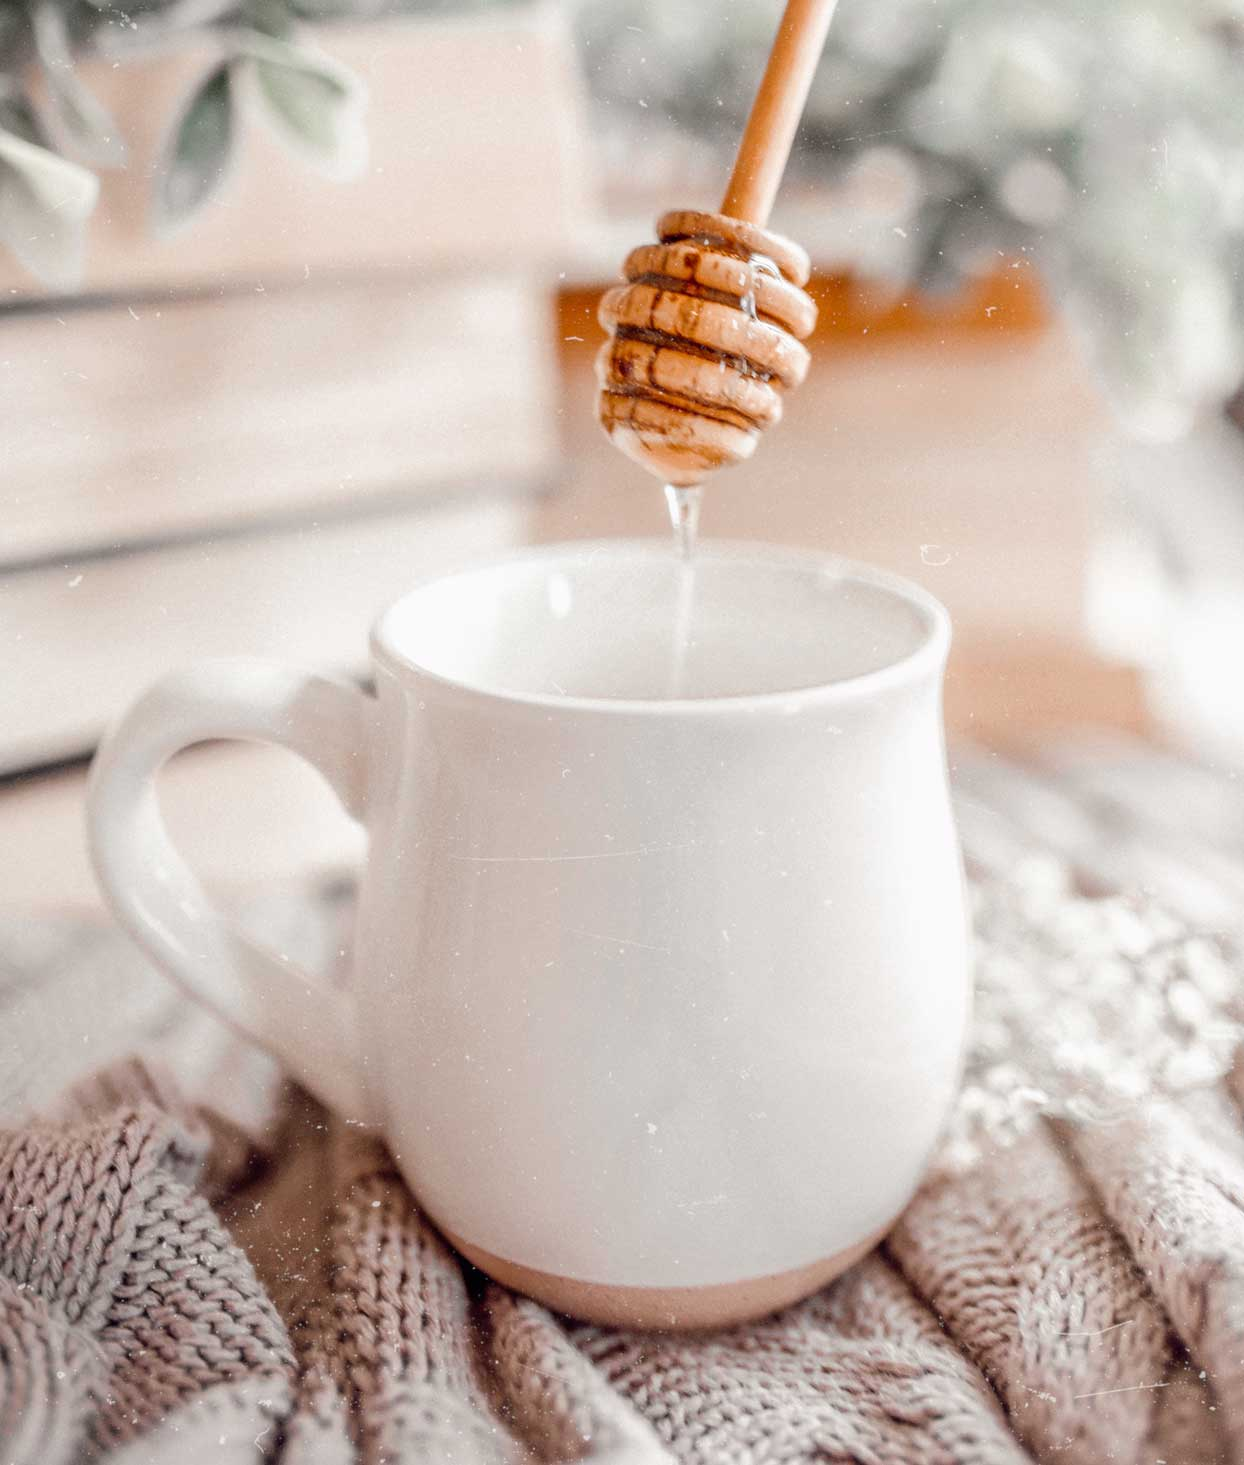 The Only Tea I Drink When I Feel a Sore Throat Coming On, According to a Nutritionist